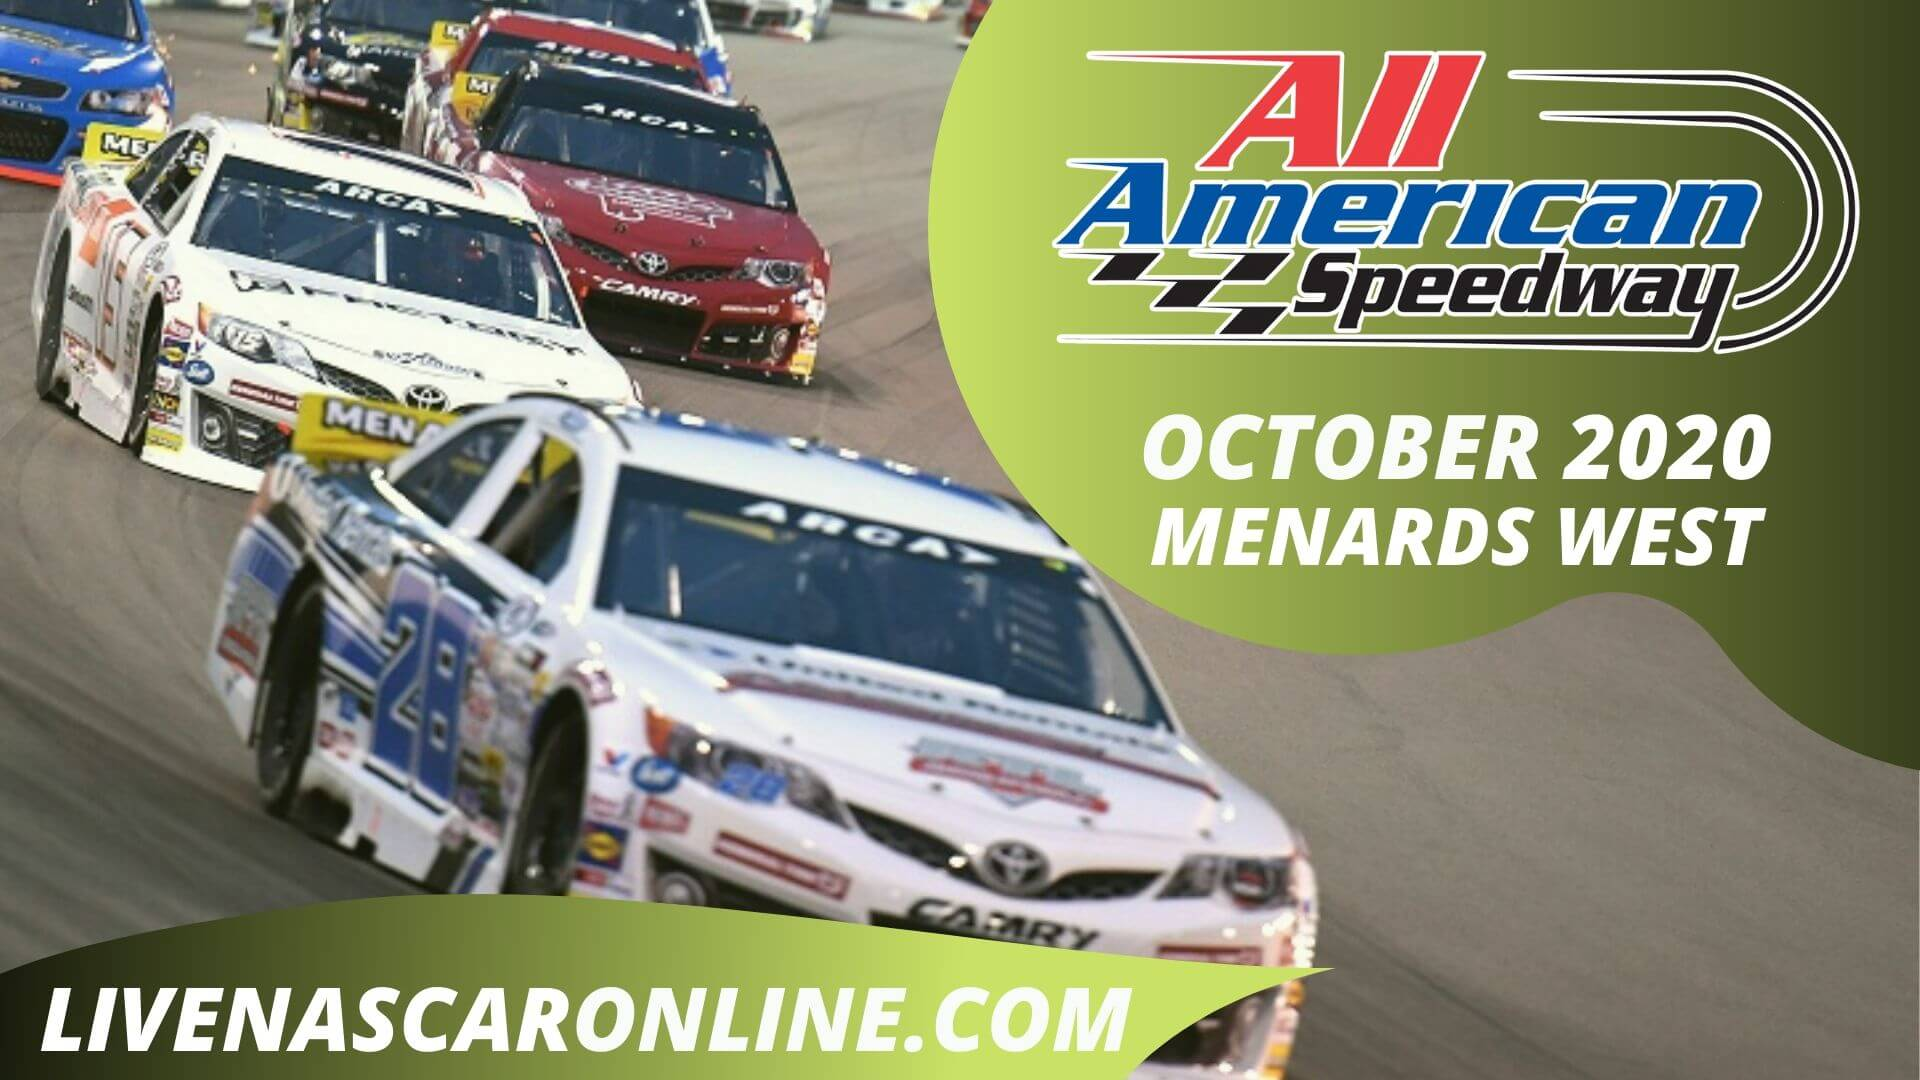 All American Speedway Live Stream 2020 | ARCA Menards